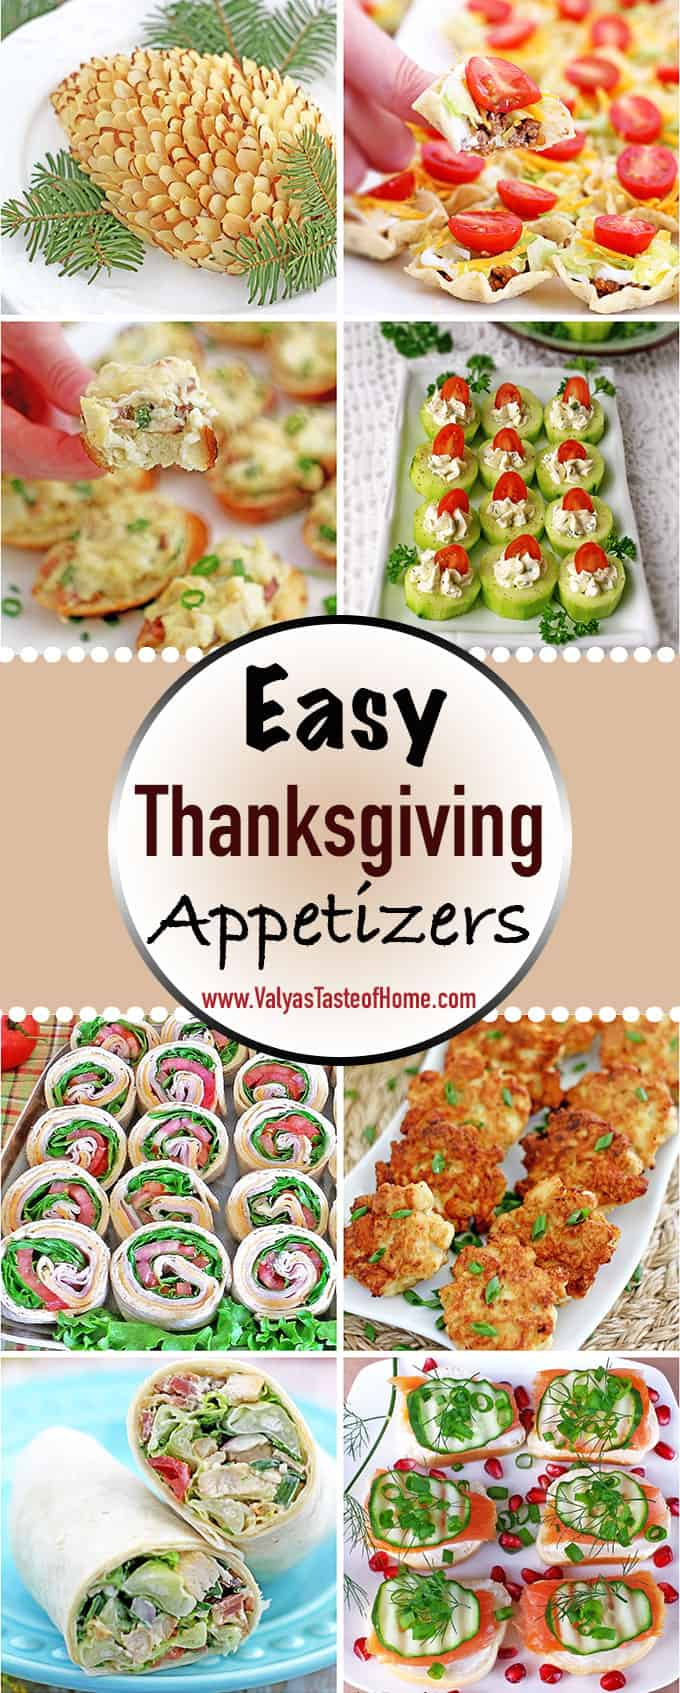 It's that time of the year again, believe it or not, where we start planning our Thanksgiving menu! In today's post, I pieced together incredibly delicious and easy to make appetizers just for you my friends to help you ease your holiday feast planning and prep.